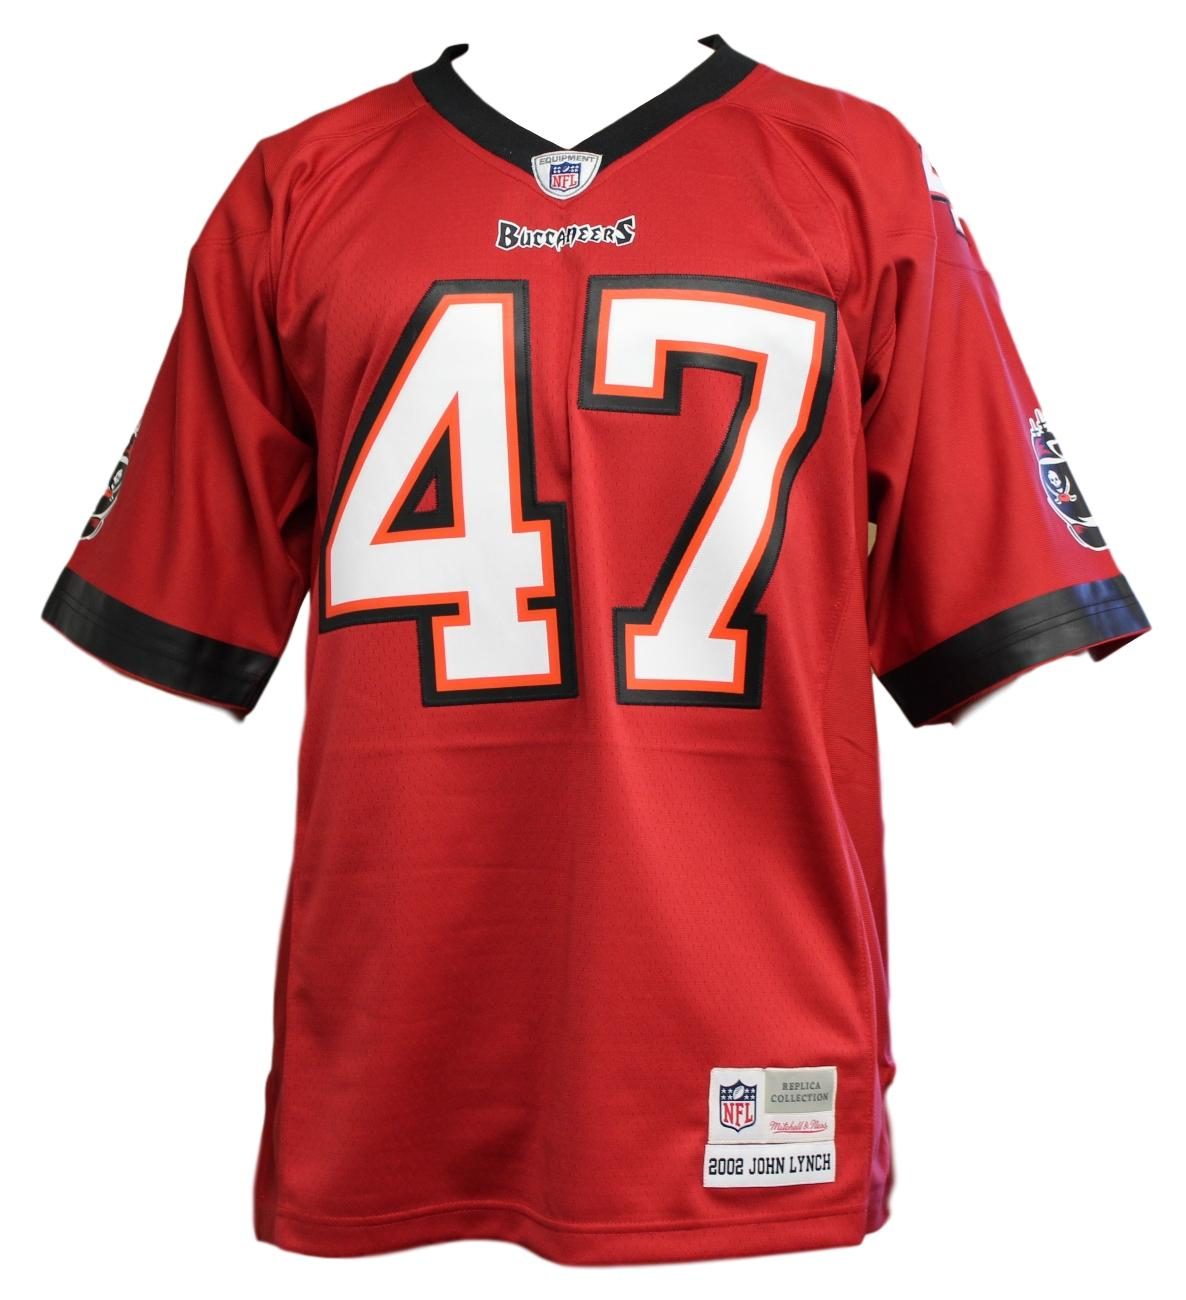 John Lynch Tampa Bay Buccaneers NFL Mitchell & Ness Throwback Premier Jersey